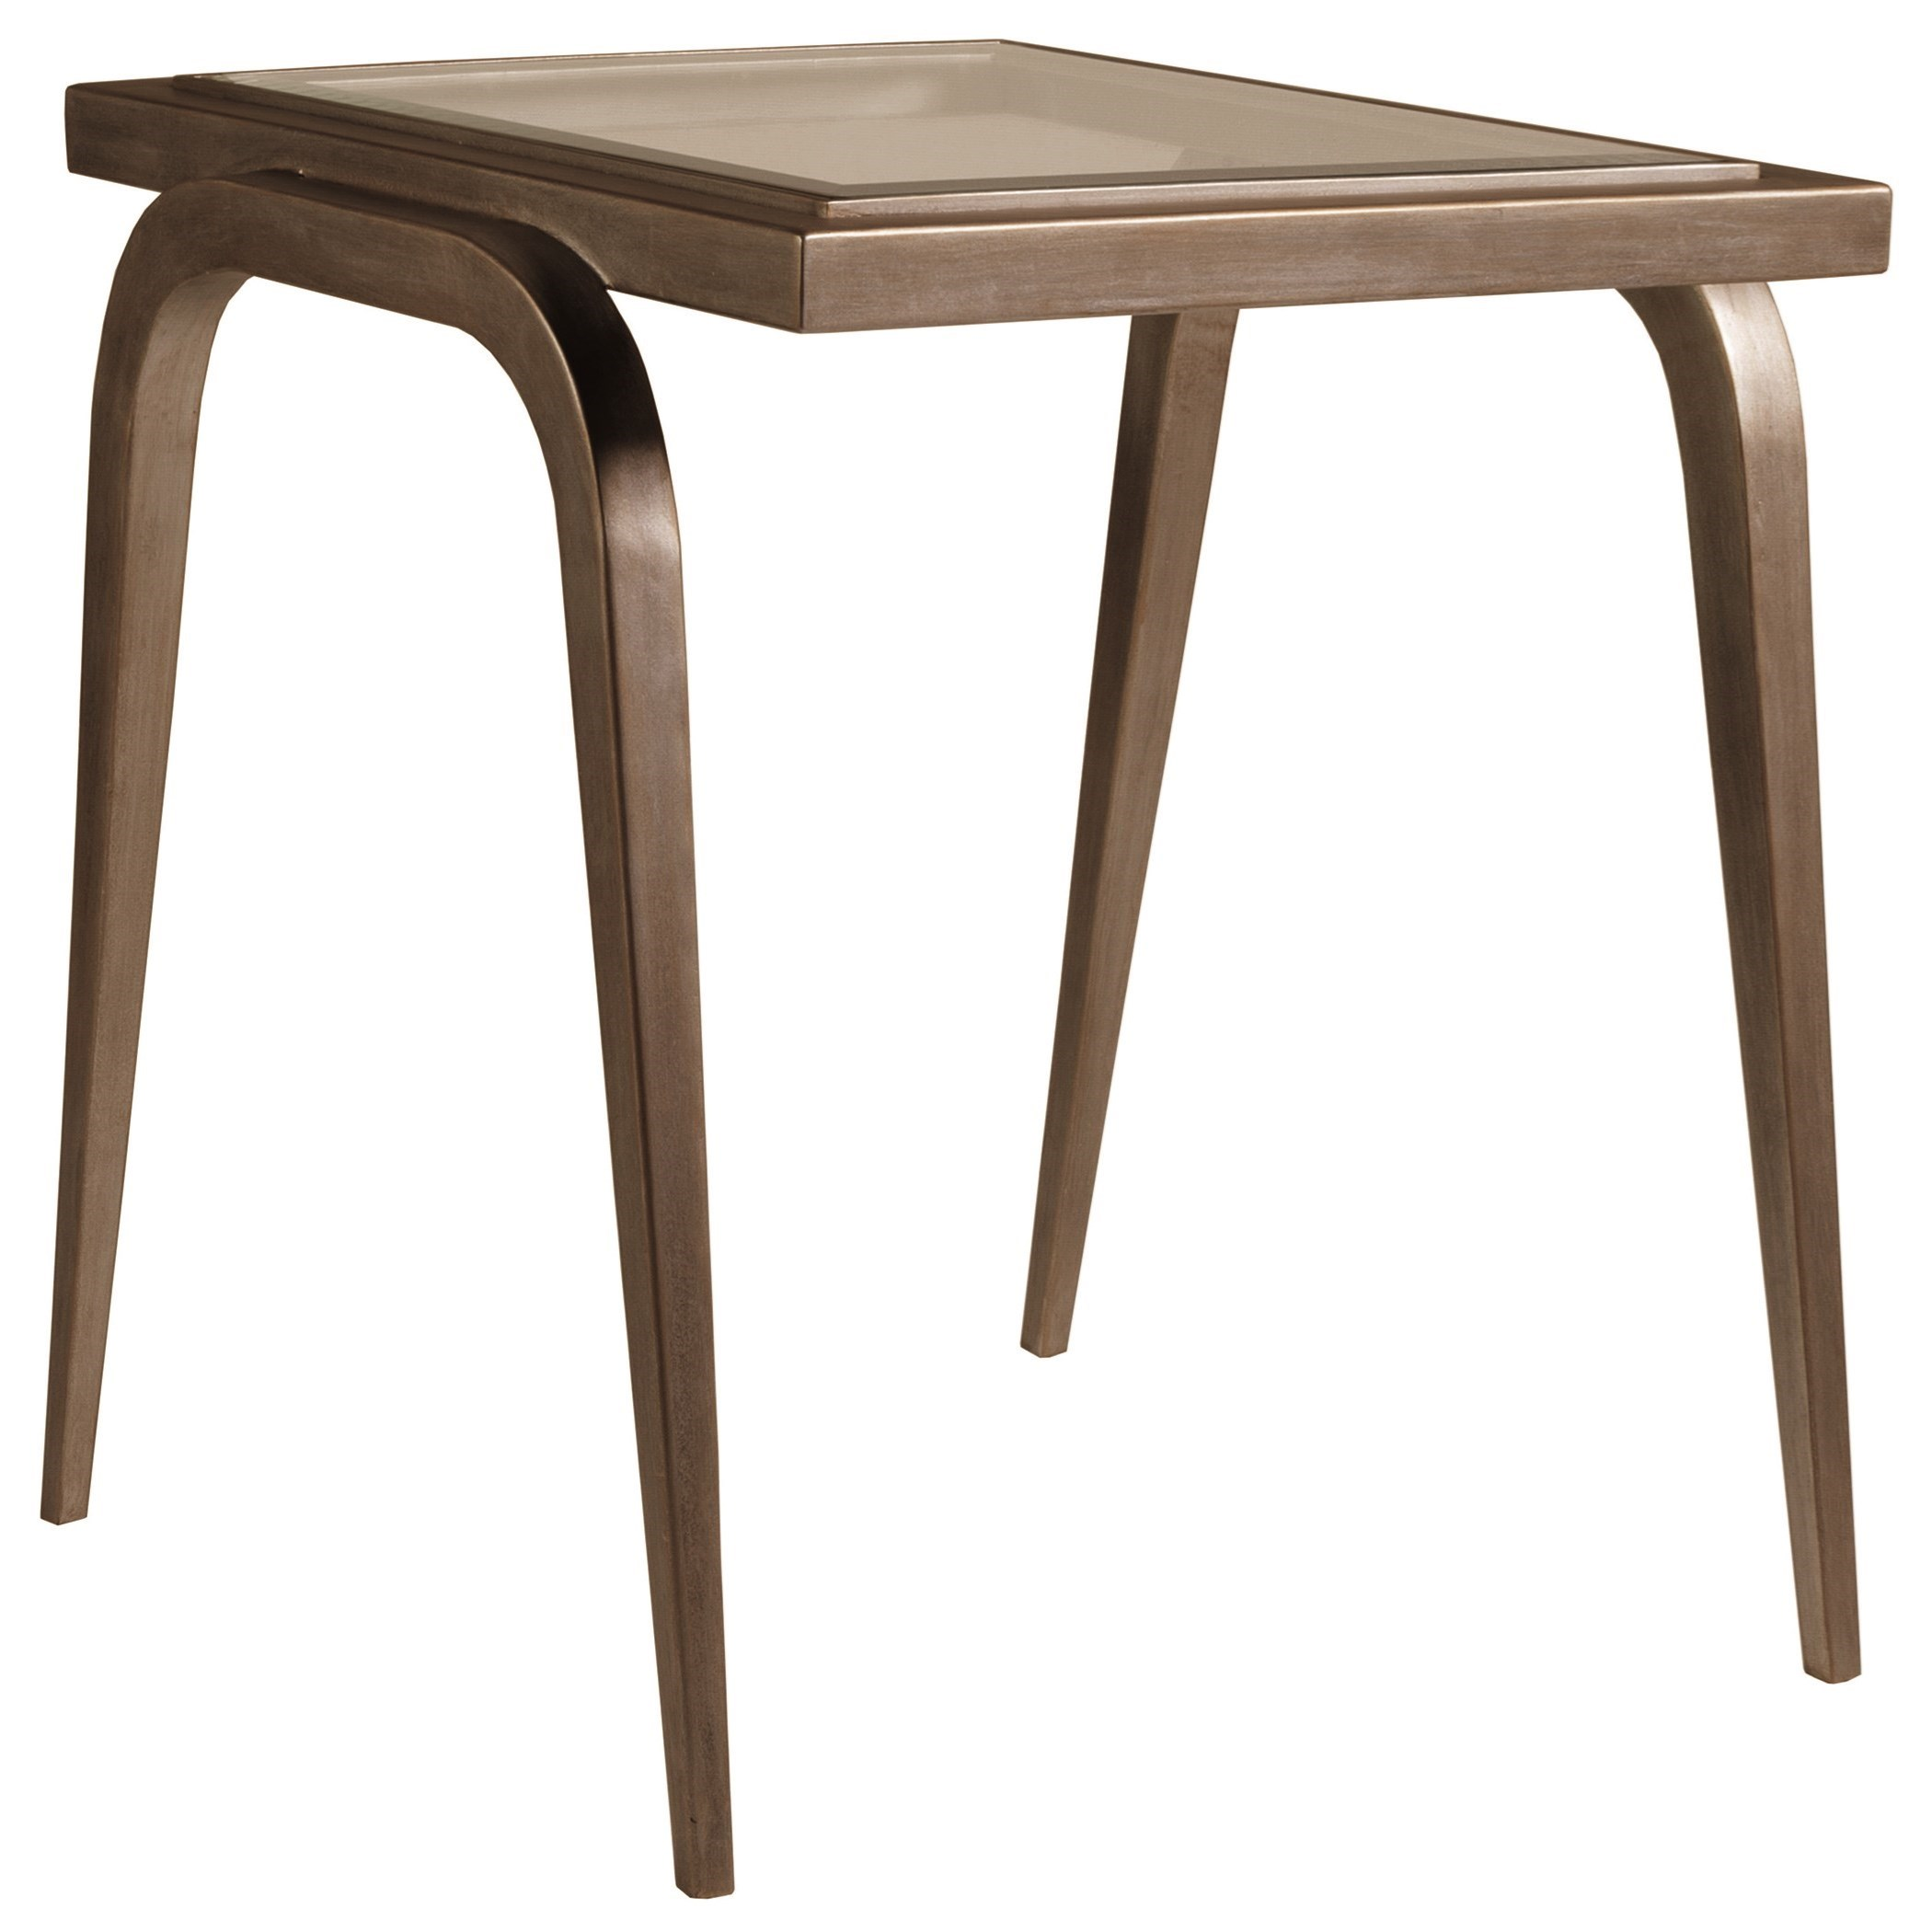 Metal Designs Mitchum Rectangular End Table by Artistica at Alison Craig Home Furnishings